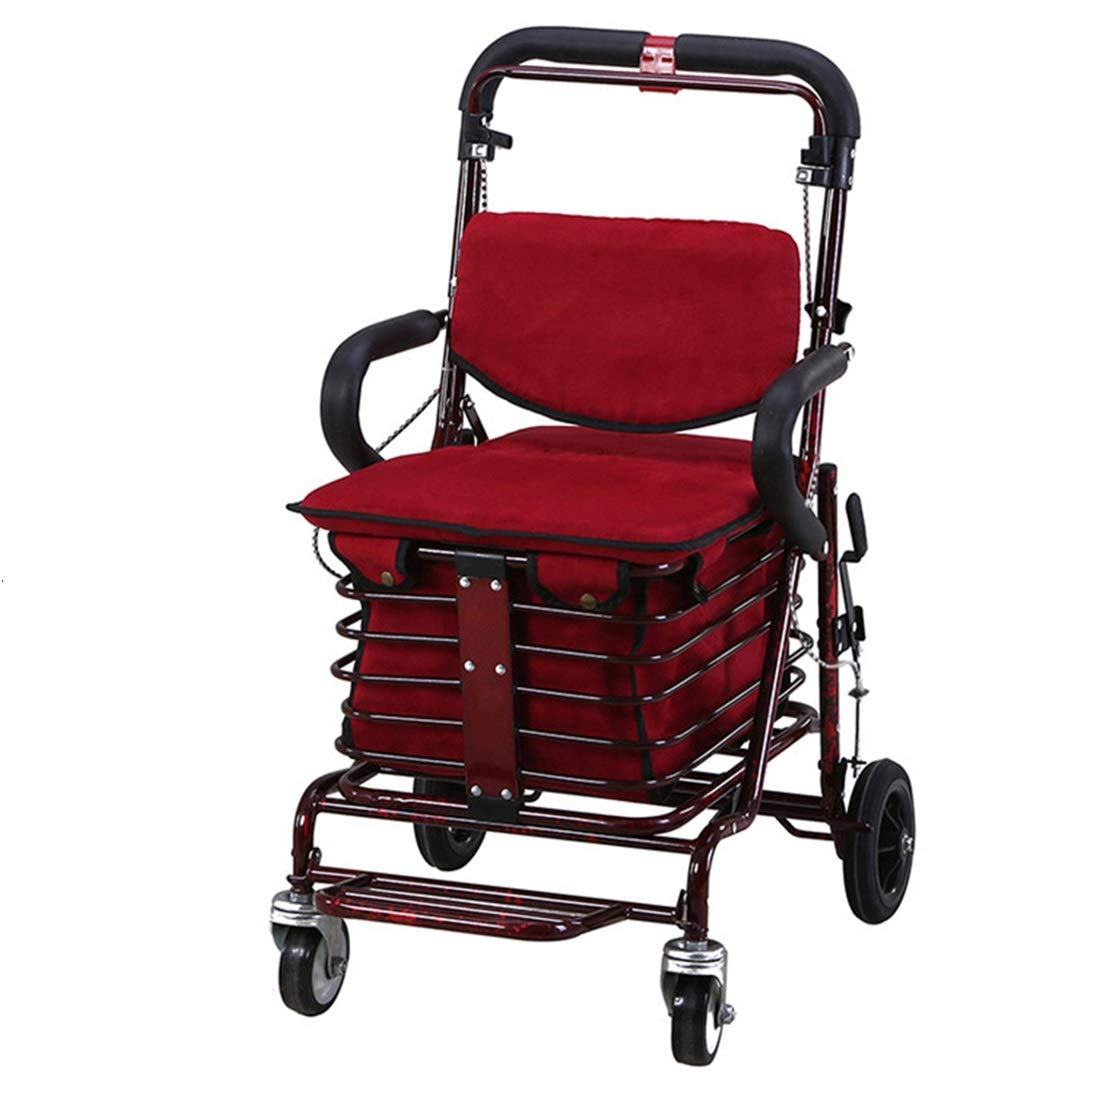 Walking Frame with Wheels Narrow,Lightweight Four Wheeled Rollator with Lockable Brake for Height Adjustment Auxiliary Walking Safety Walker (Size : Deep red)